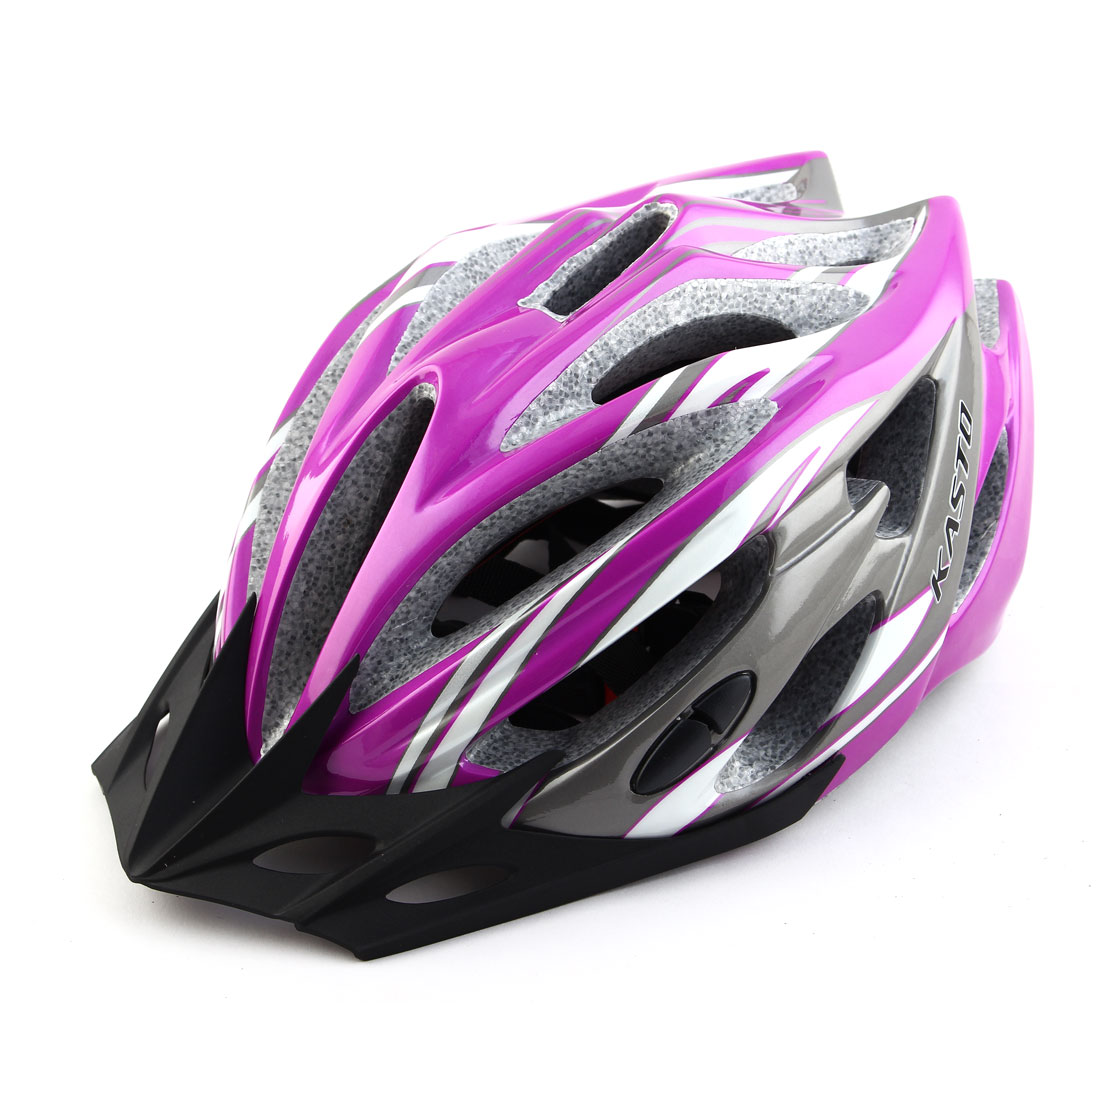 Adult Unisex 21 Holes Portable Cycling Cap Head Safety Protector Riding Hat Adjustable Biking Helmet Purple